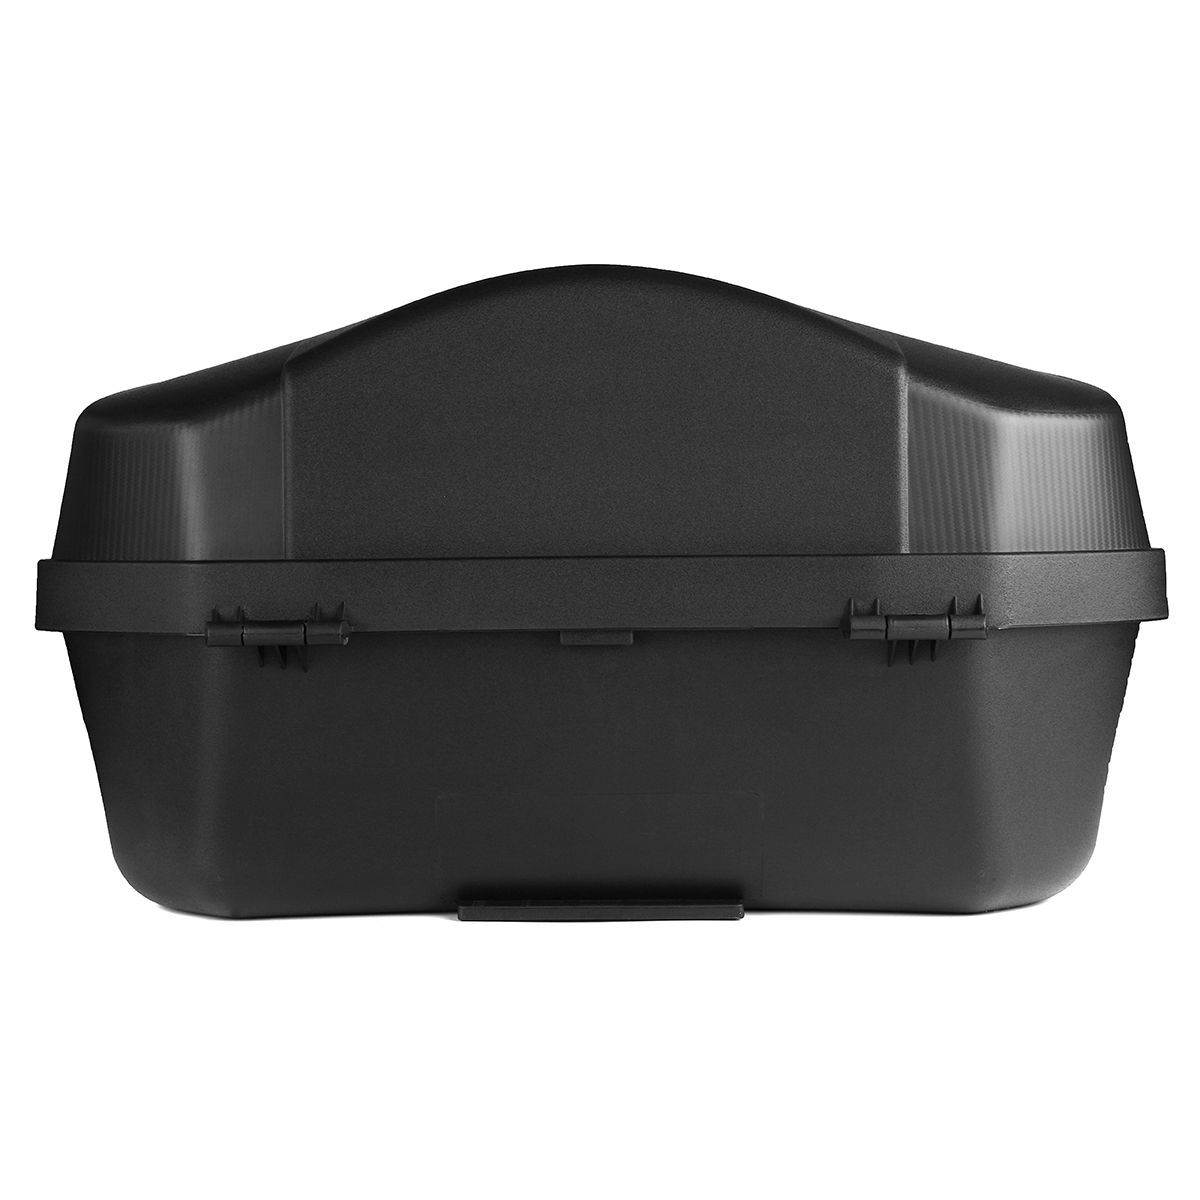 48L Motorcycle Scooter Top Box Topbox Rear Luggage Storage W//LED Light